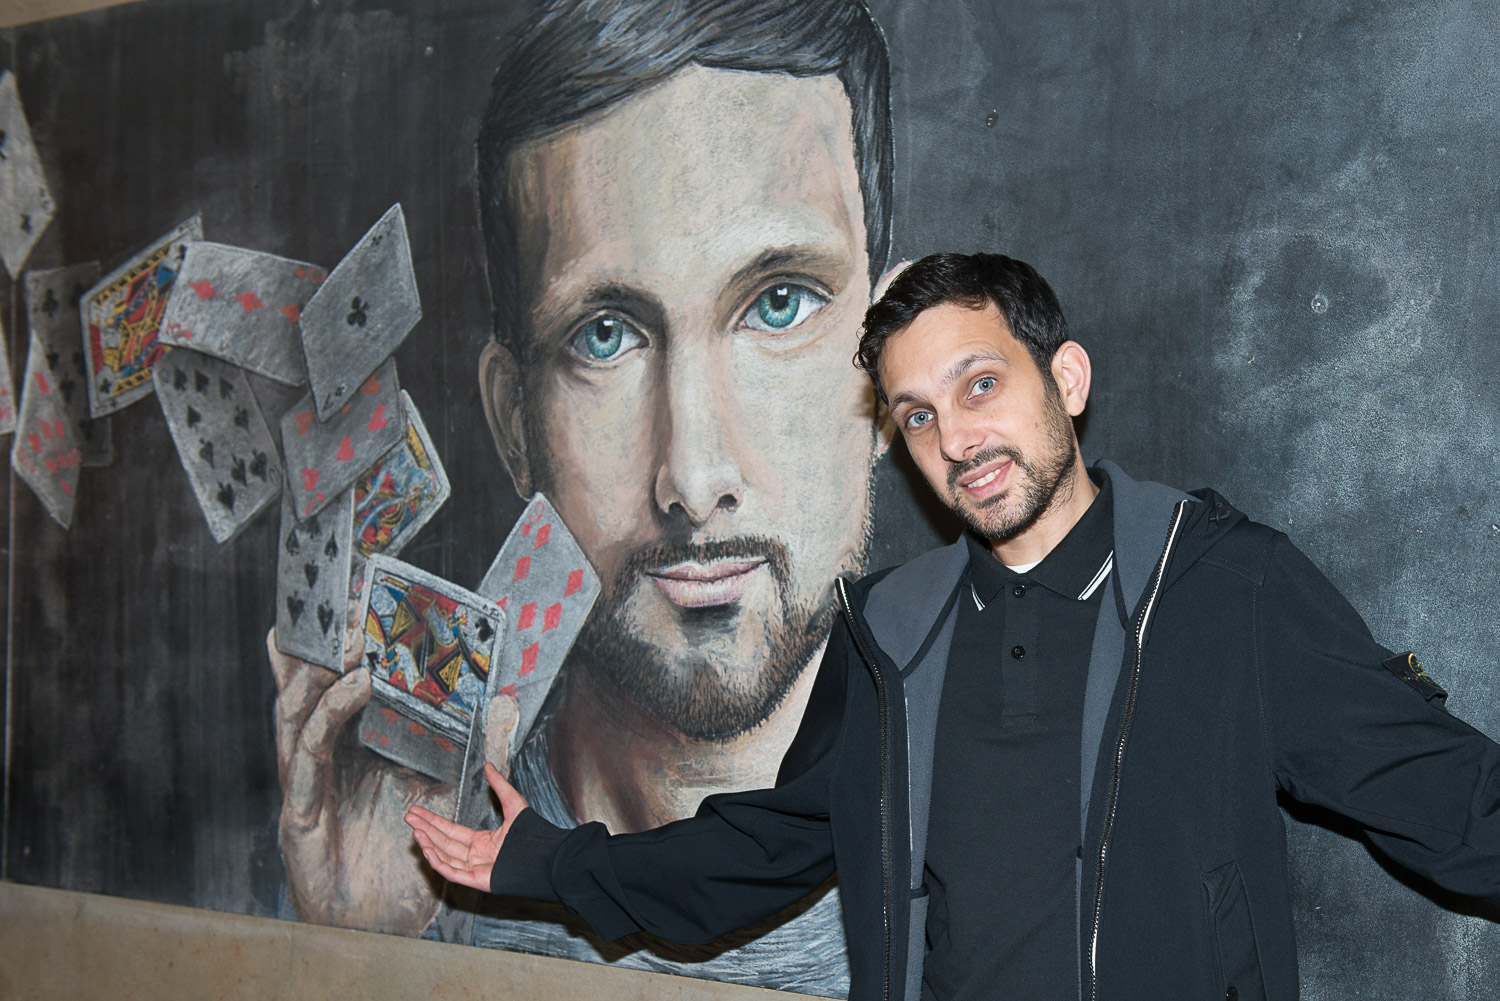 Dynamo Meet & Greet for Discovery Networks